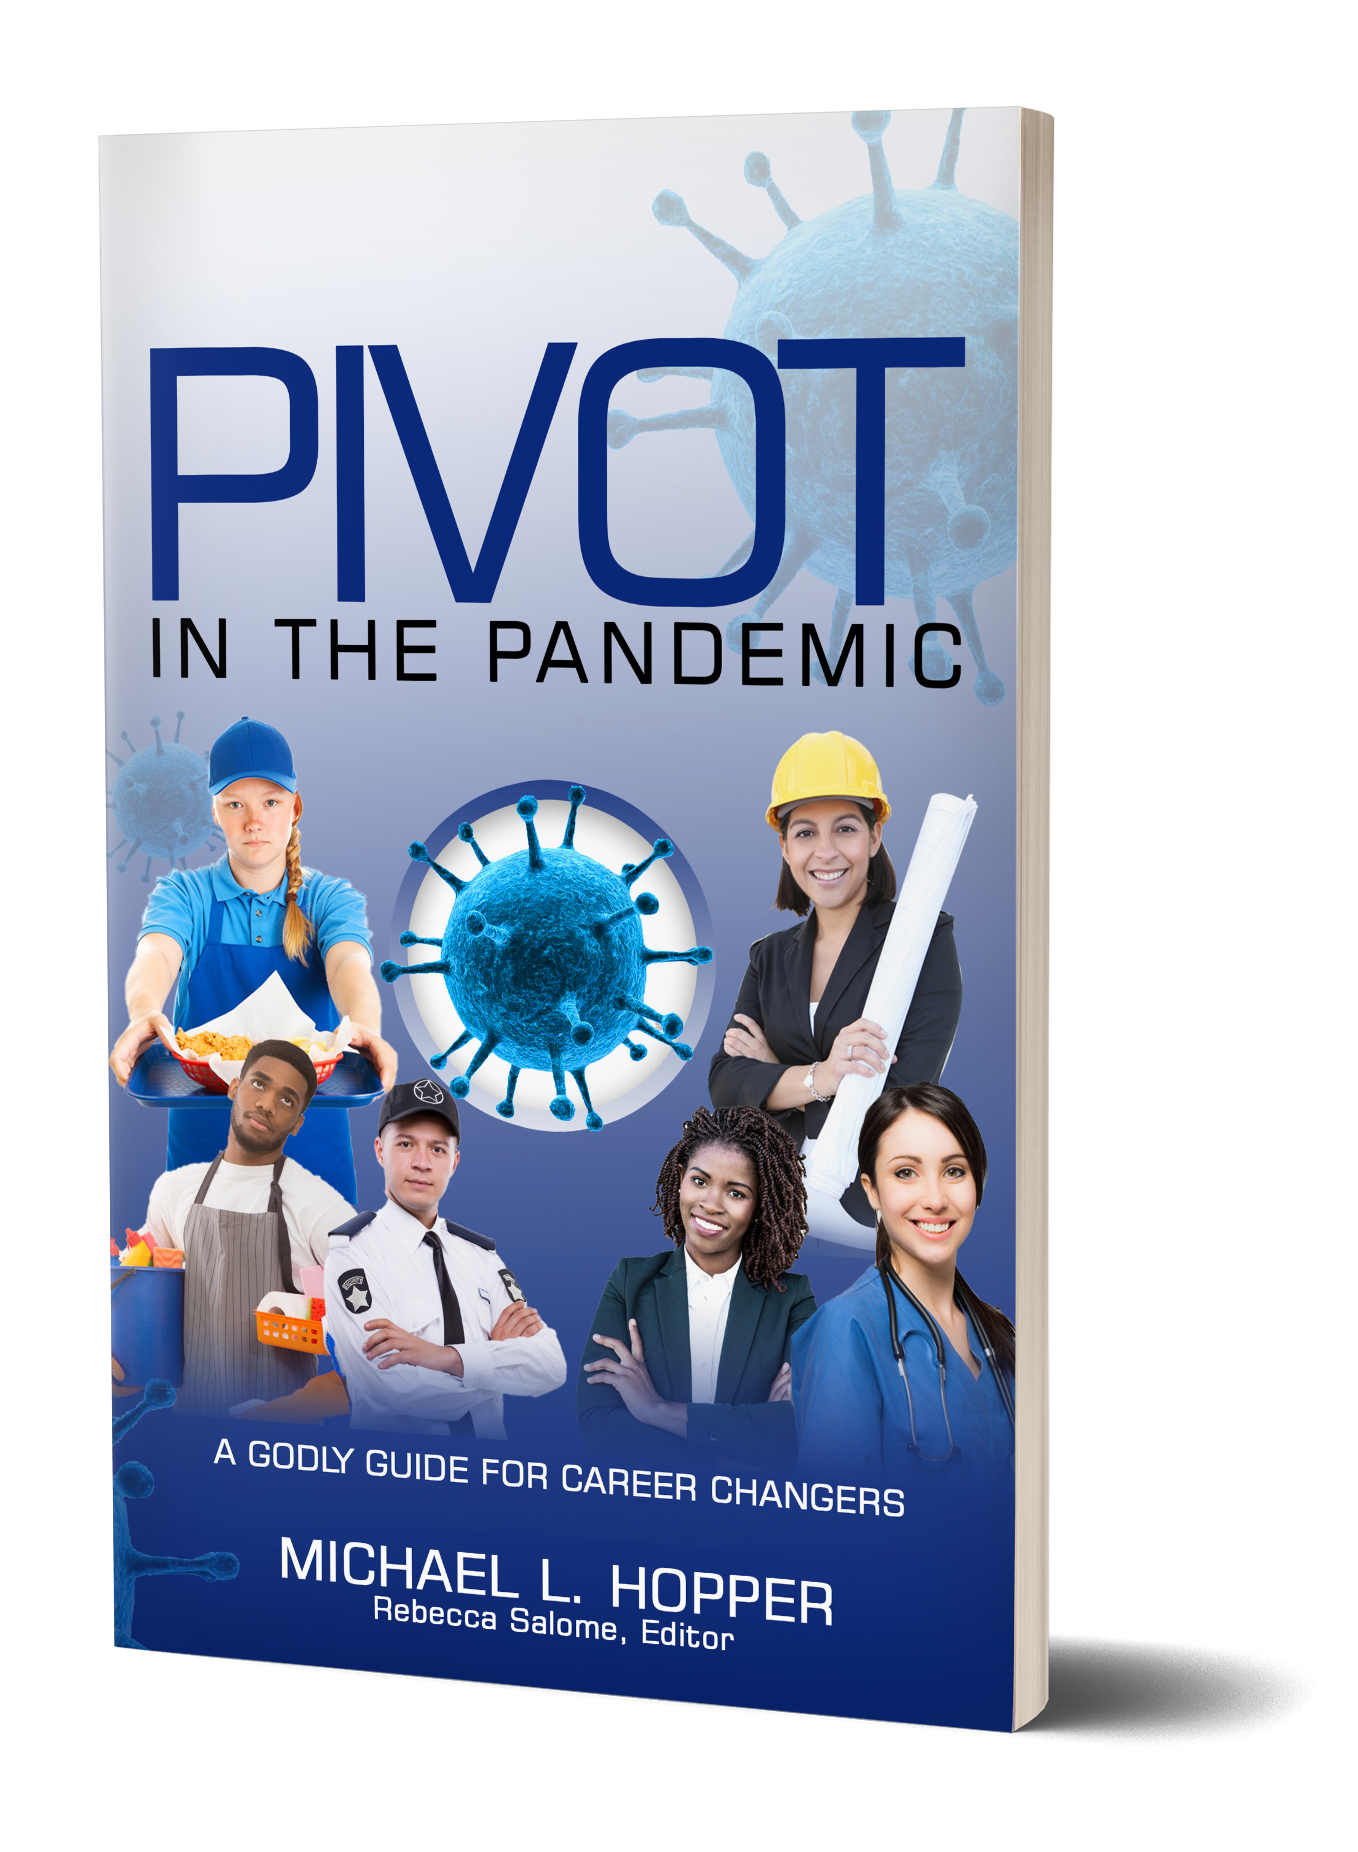 Pivot in the Pandemic Book Cover